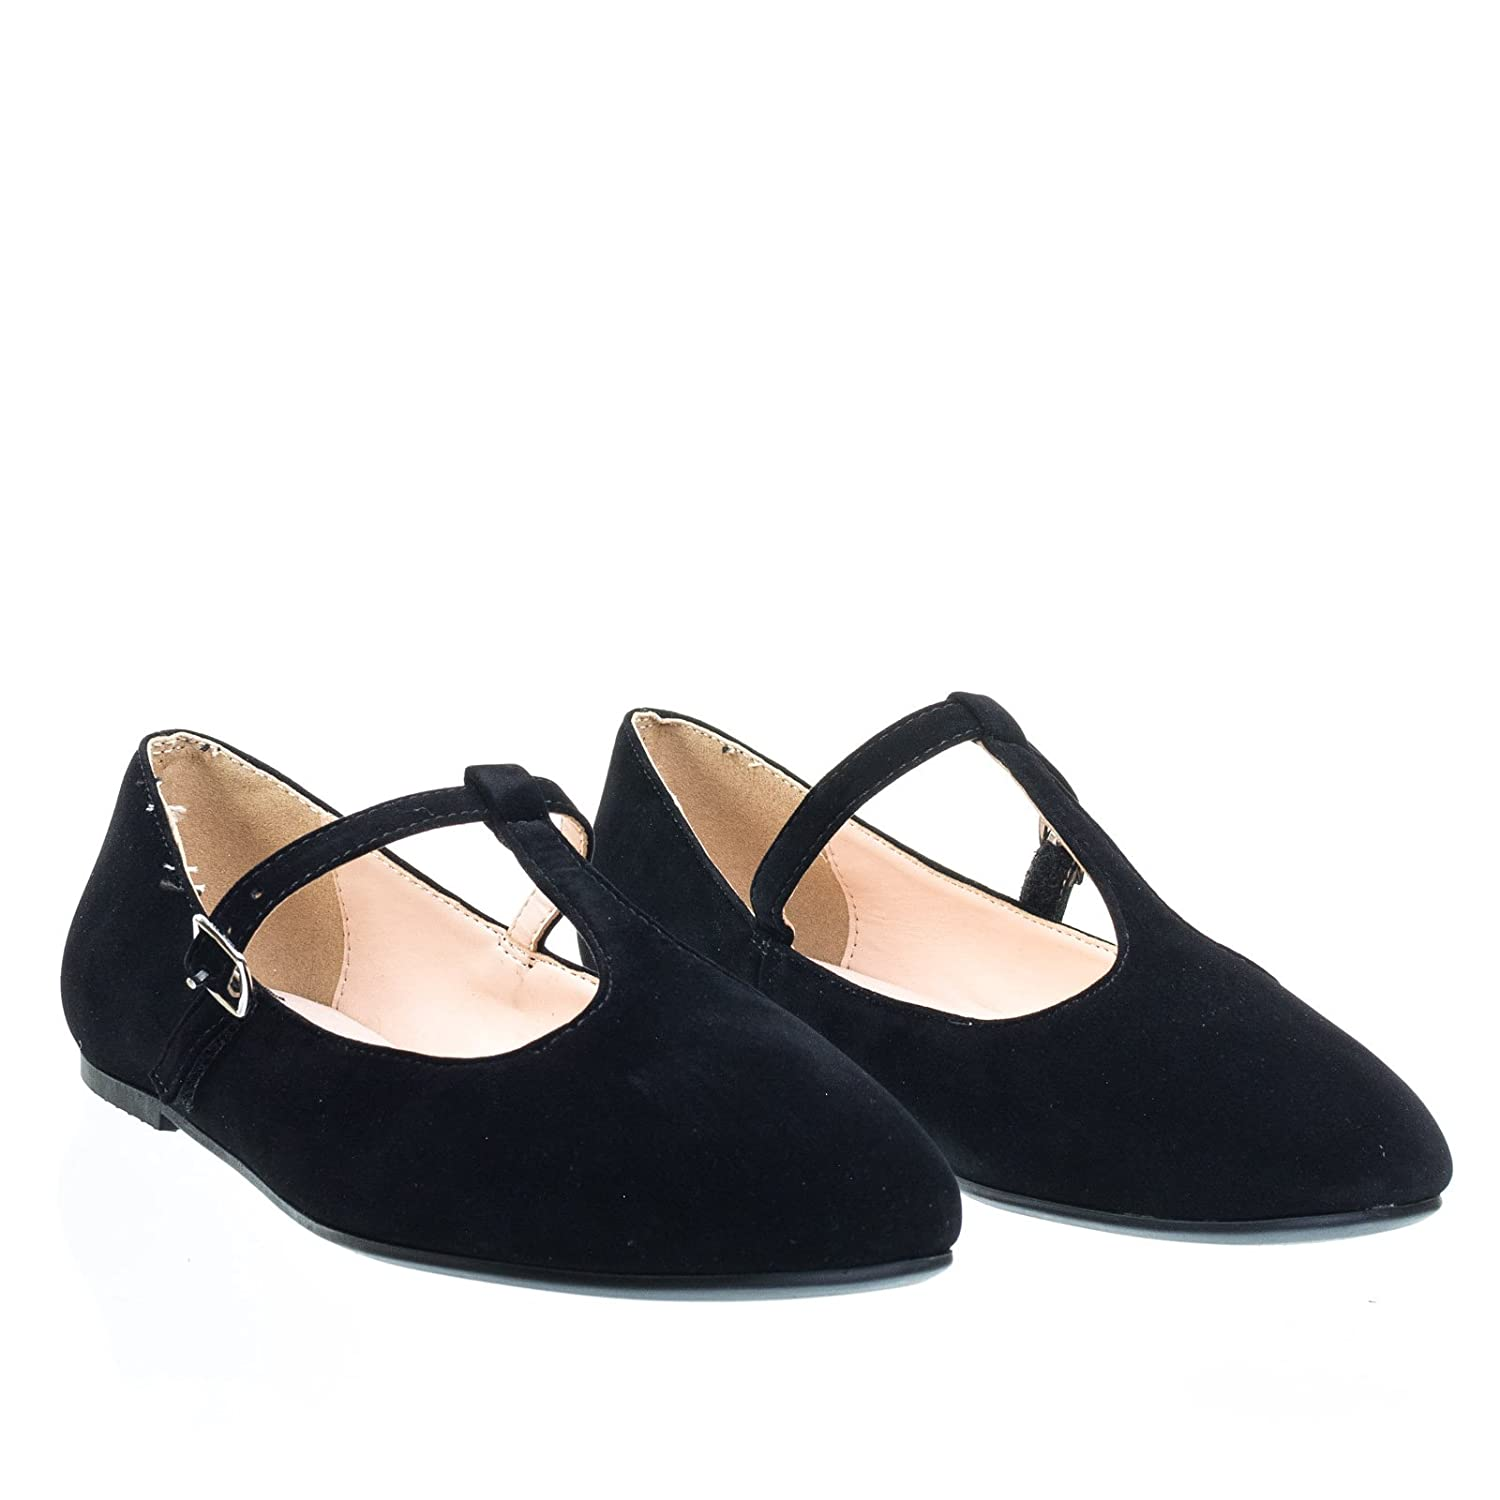 1930s Style Shoes – Art Deco Shoes Ballet T-Strap Mary-Jane Flats. Womens Ballerina Round Toe Comfort Flats $23.50 AT vintagedancer.com